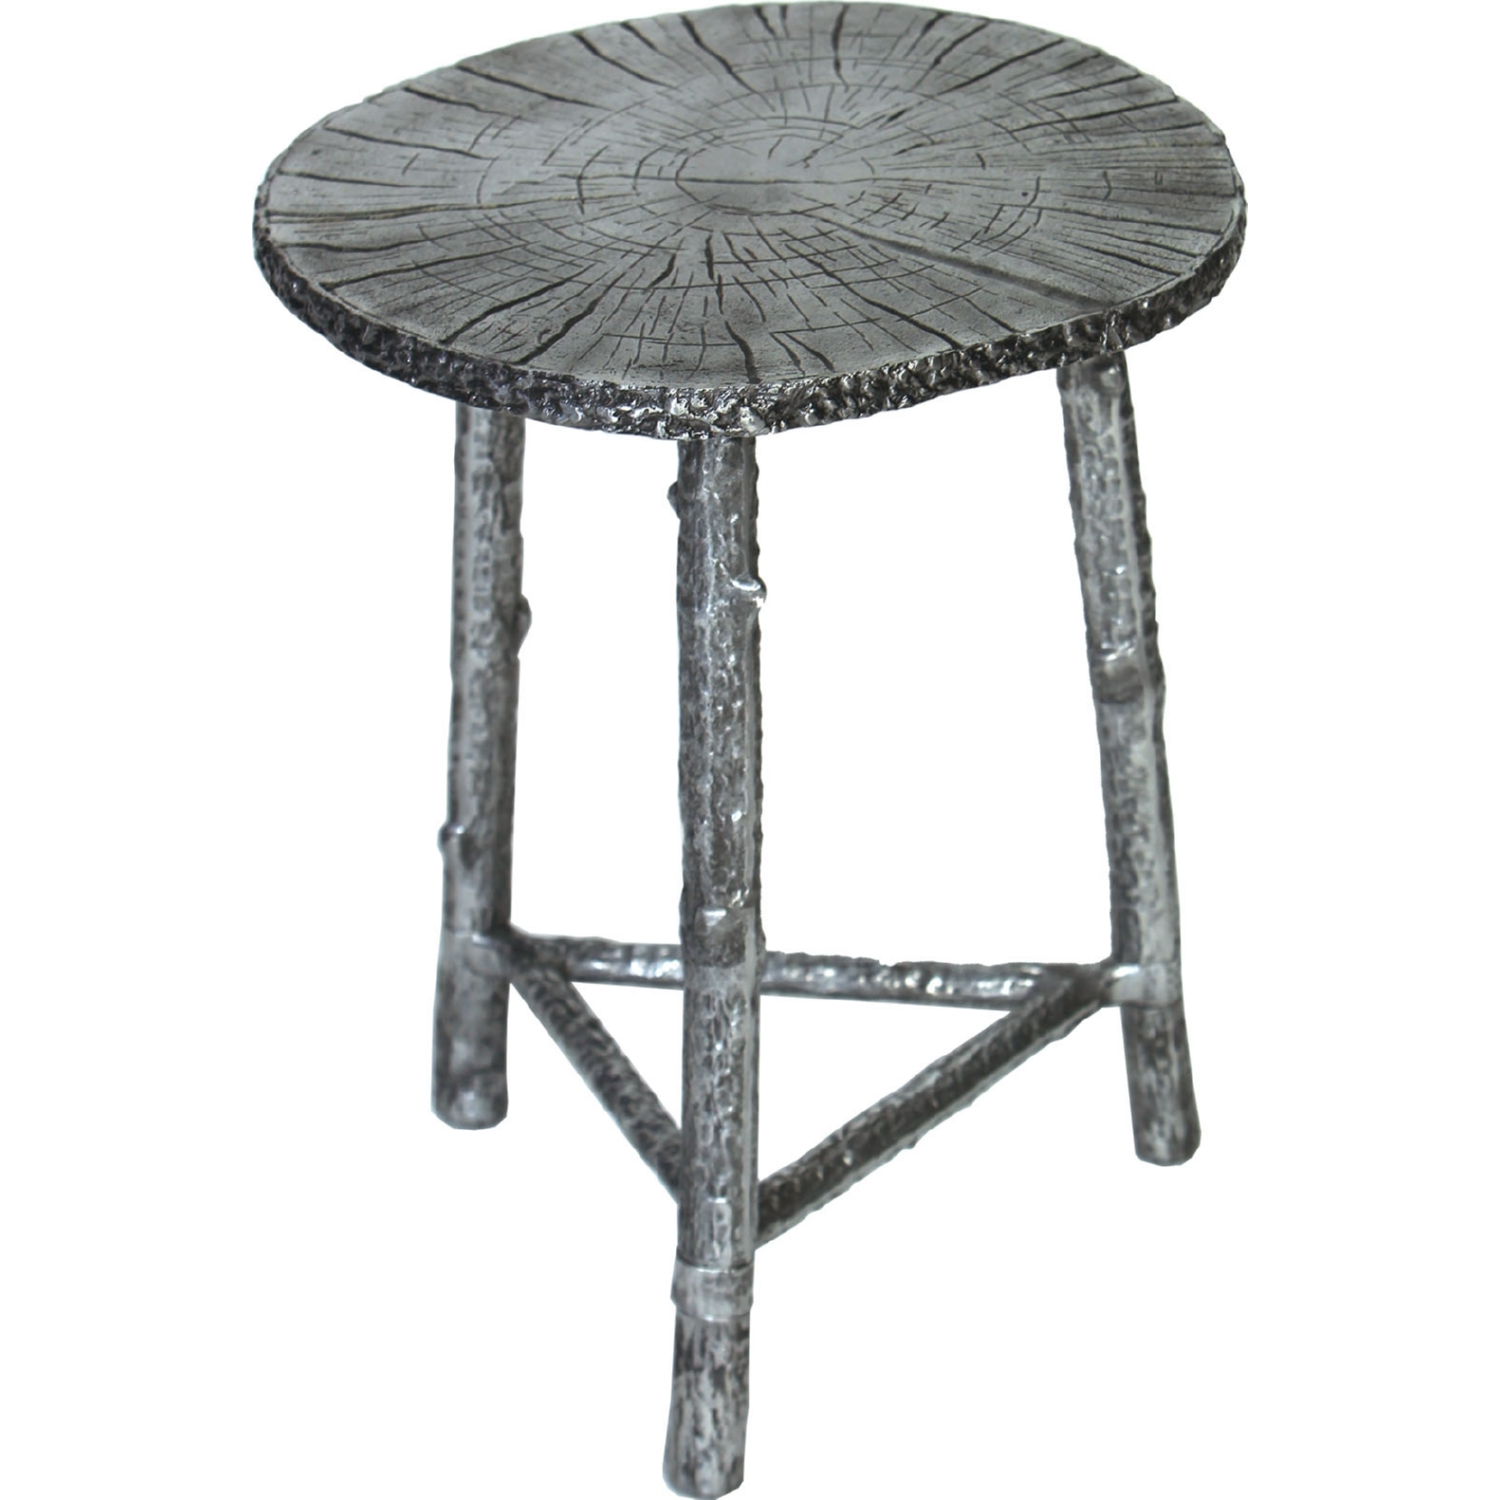 prima design source cast aluminum accent table bronze metal tables finish patina tree branch style legs square marble top end concrete console dining and chairs kitchen with